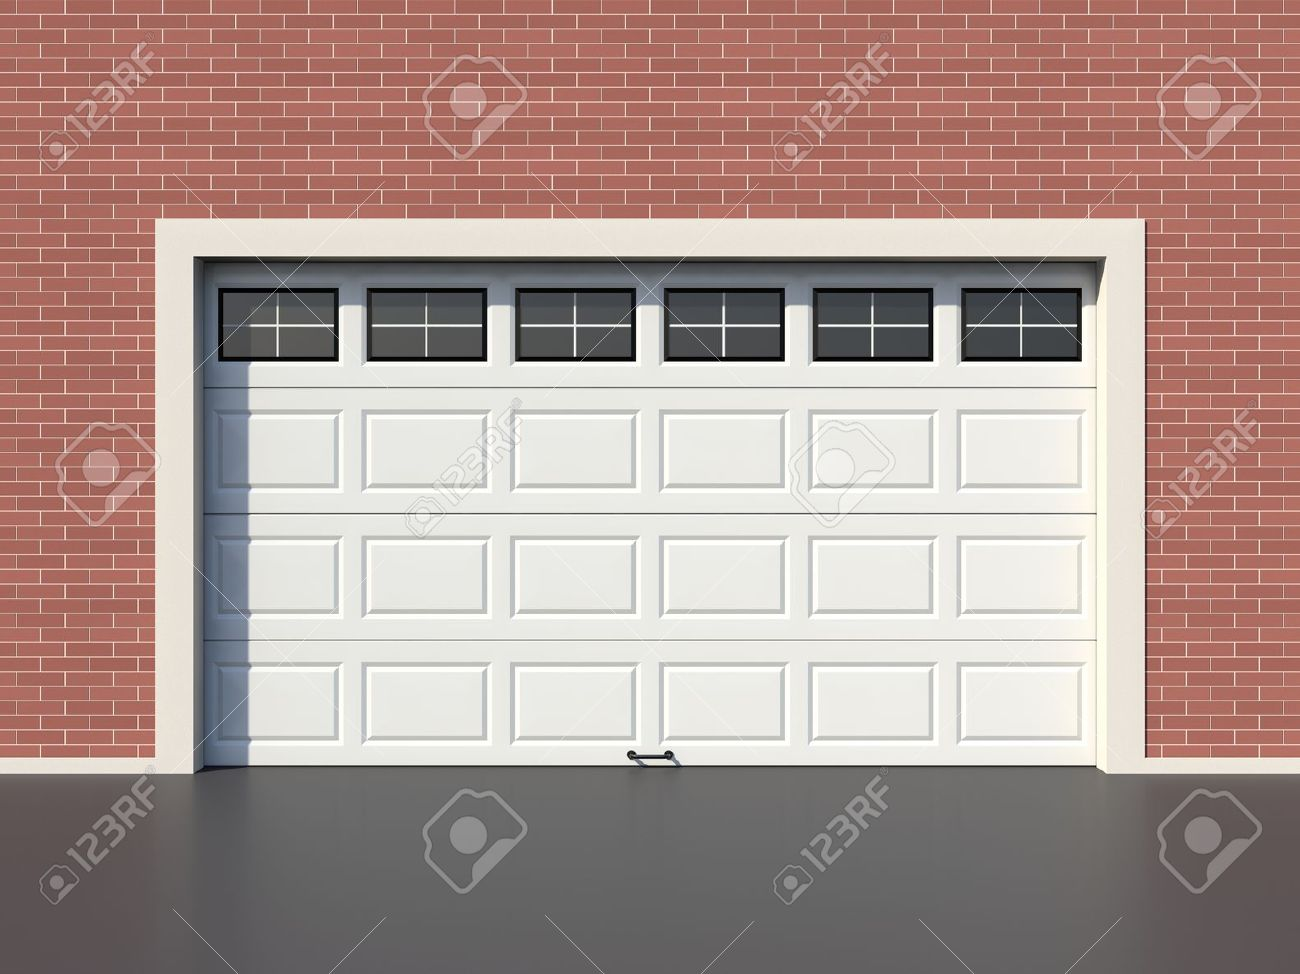 Modern White Garage Door modern white garage door with windows stock photo, picture and